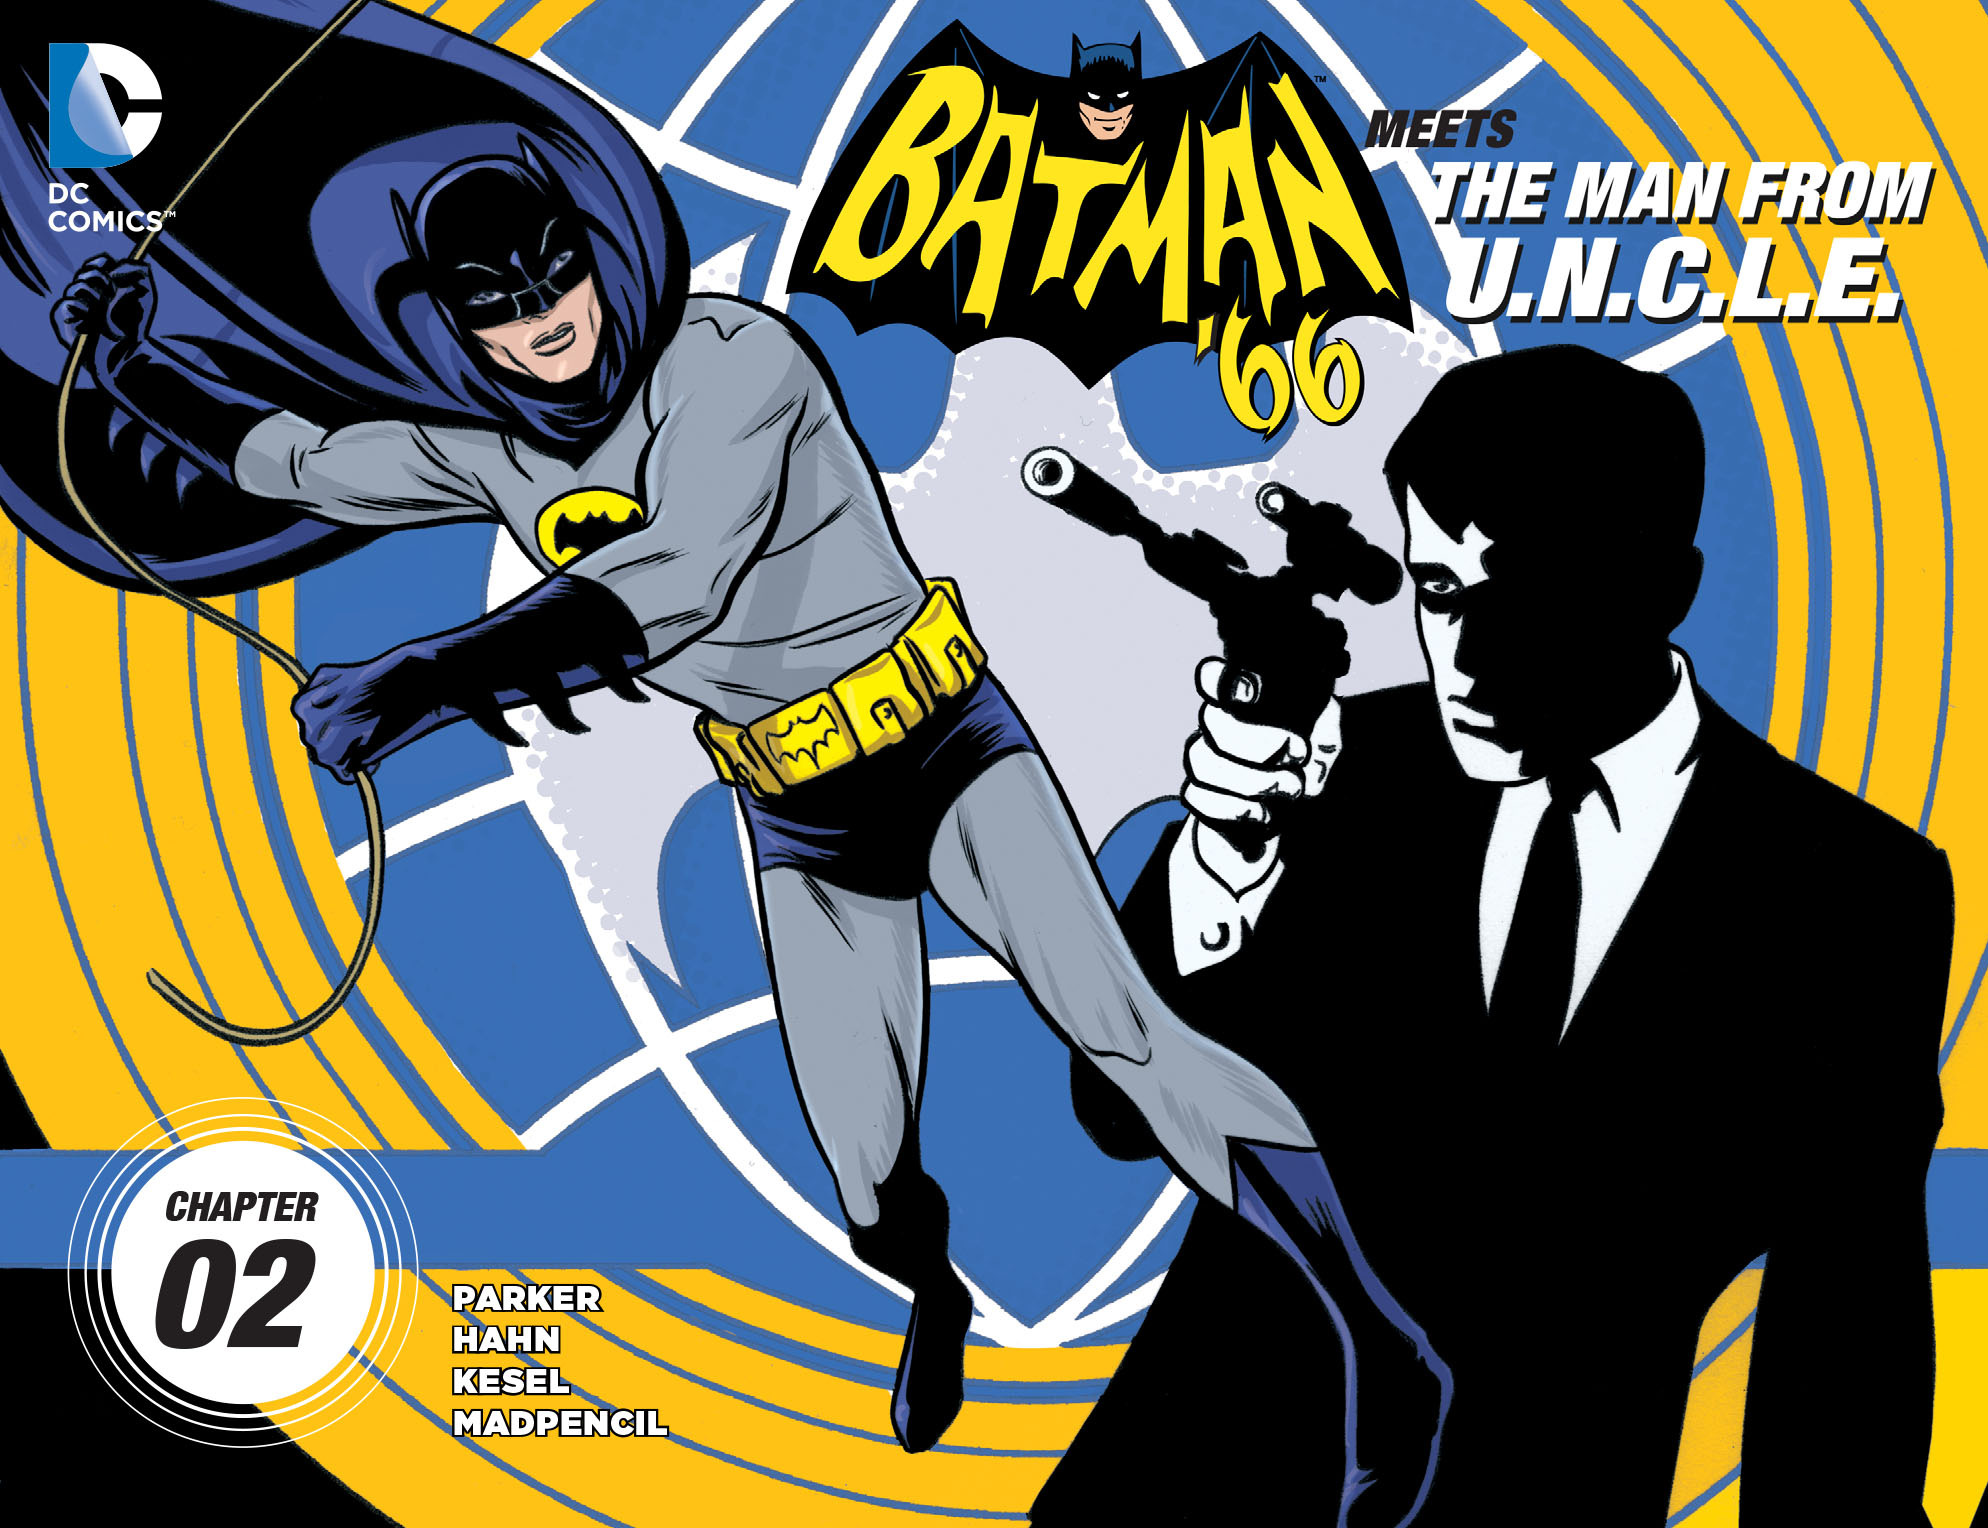 Batman 66 Meets the Man from U.N.C.L.E. 2 Page 1